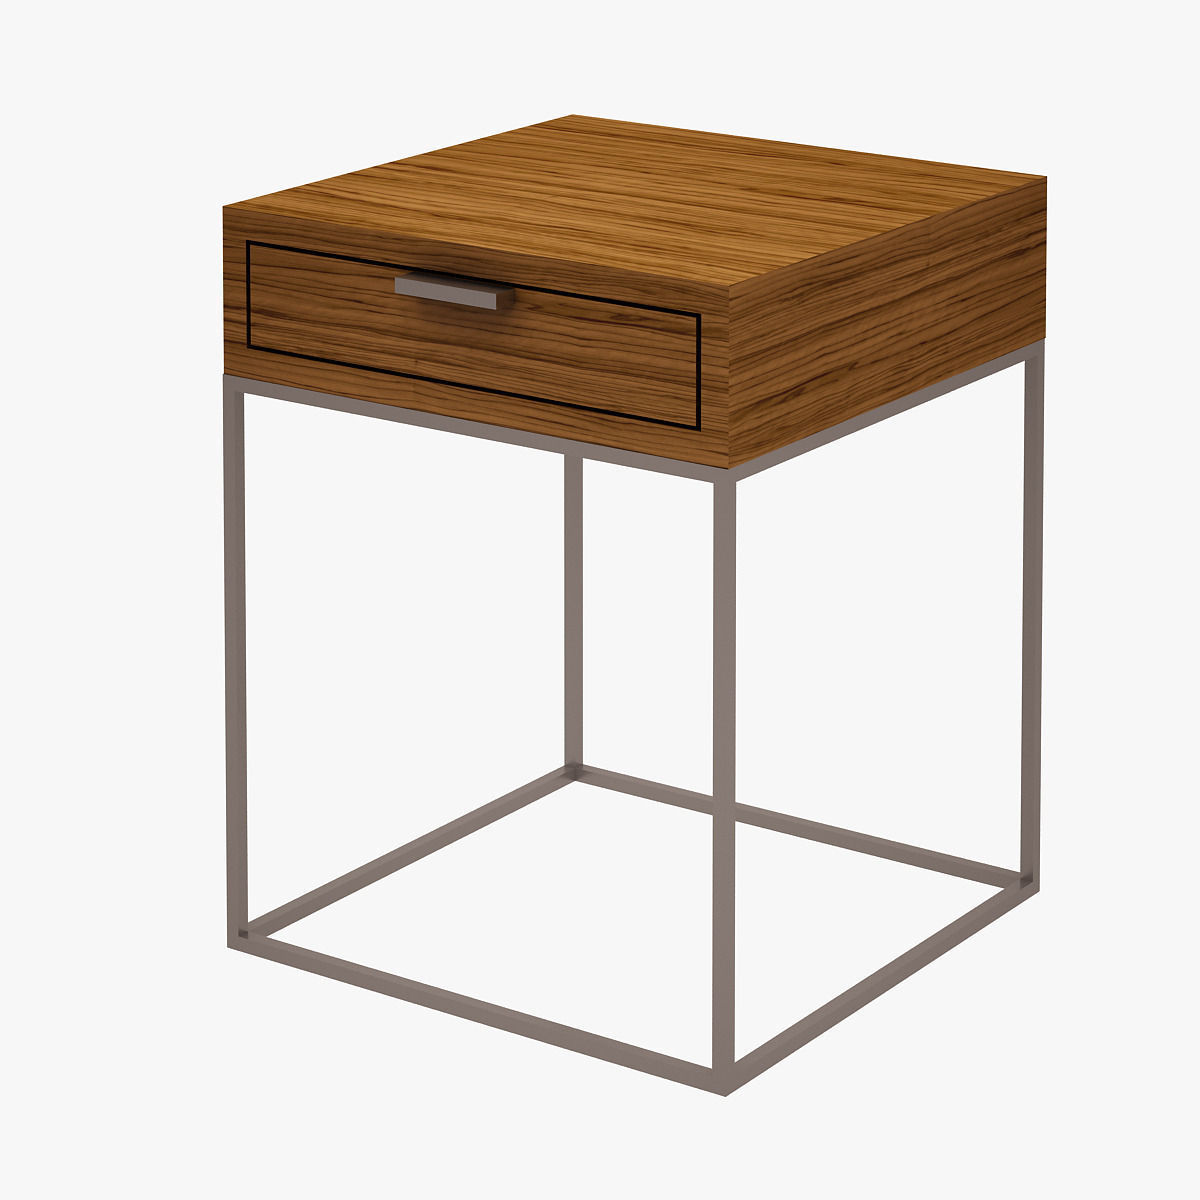 Oscar coffee table zanotta 3d model game ready max obj for Table zanotta